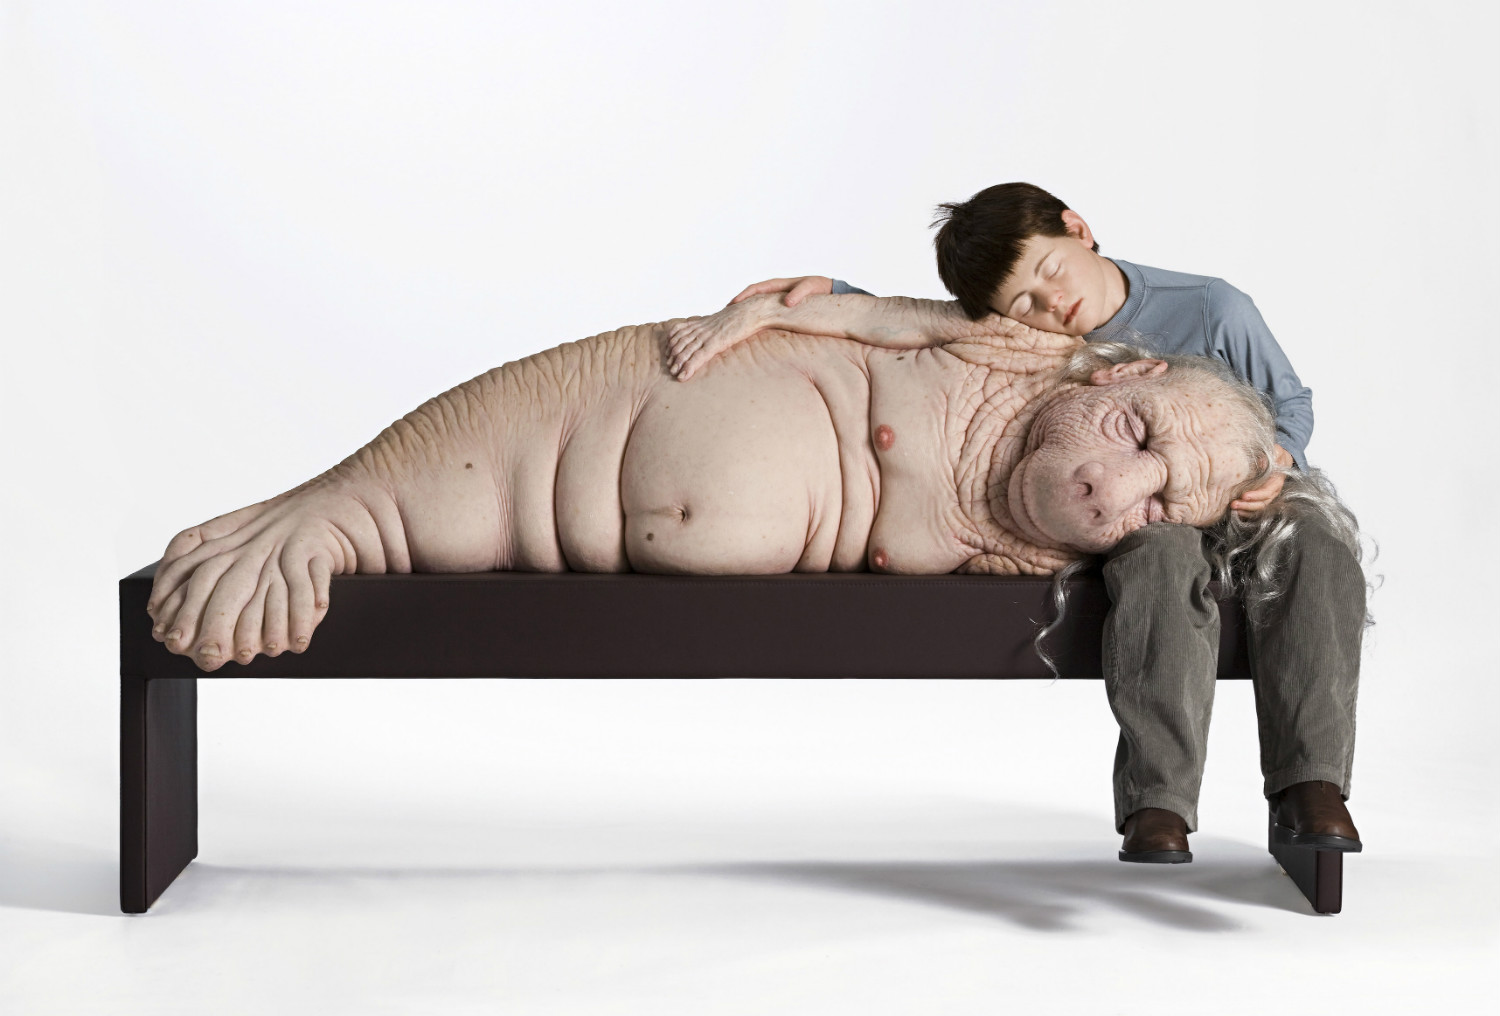 patricia piccinini sculpture the long awaited